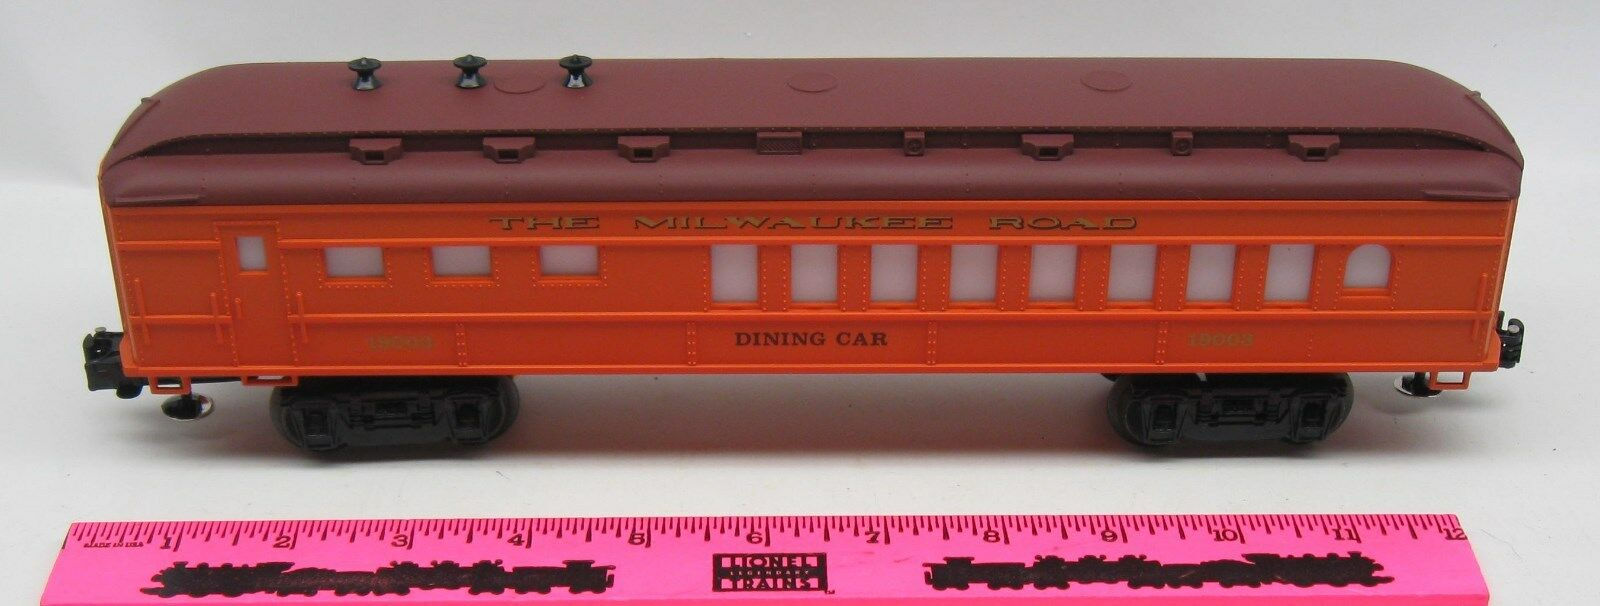 Lionel  19003 The Milwaukee Road dining car passenger car